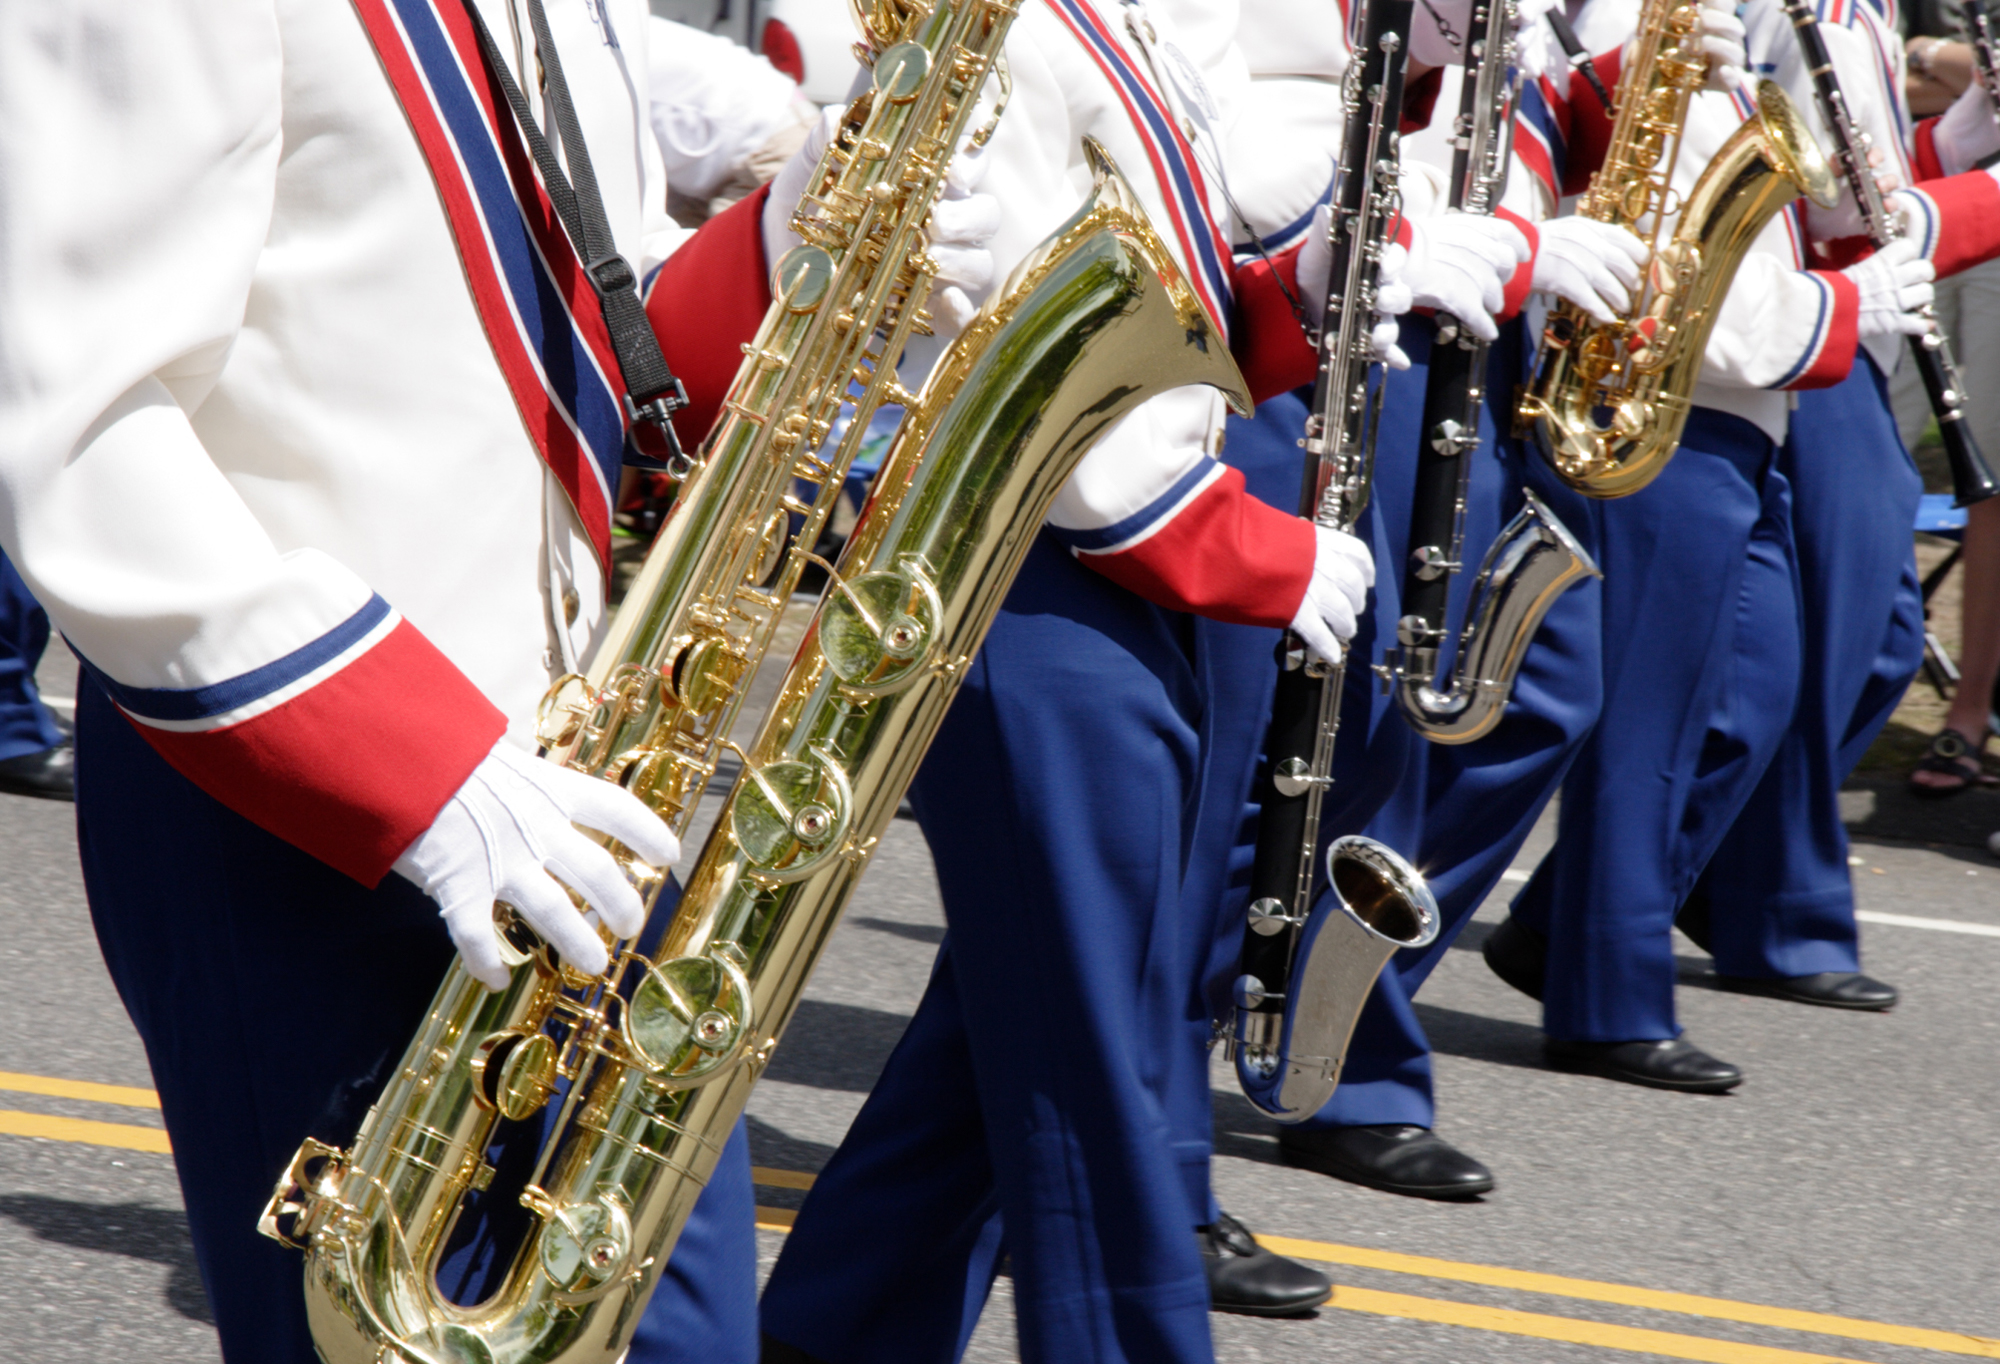 Marching Band GettyImages-133422743.jpg